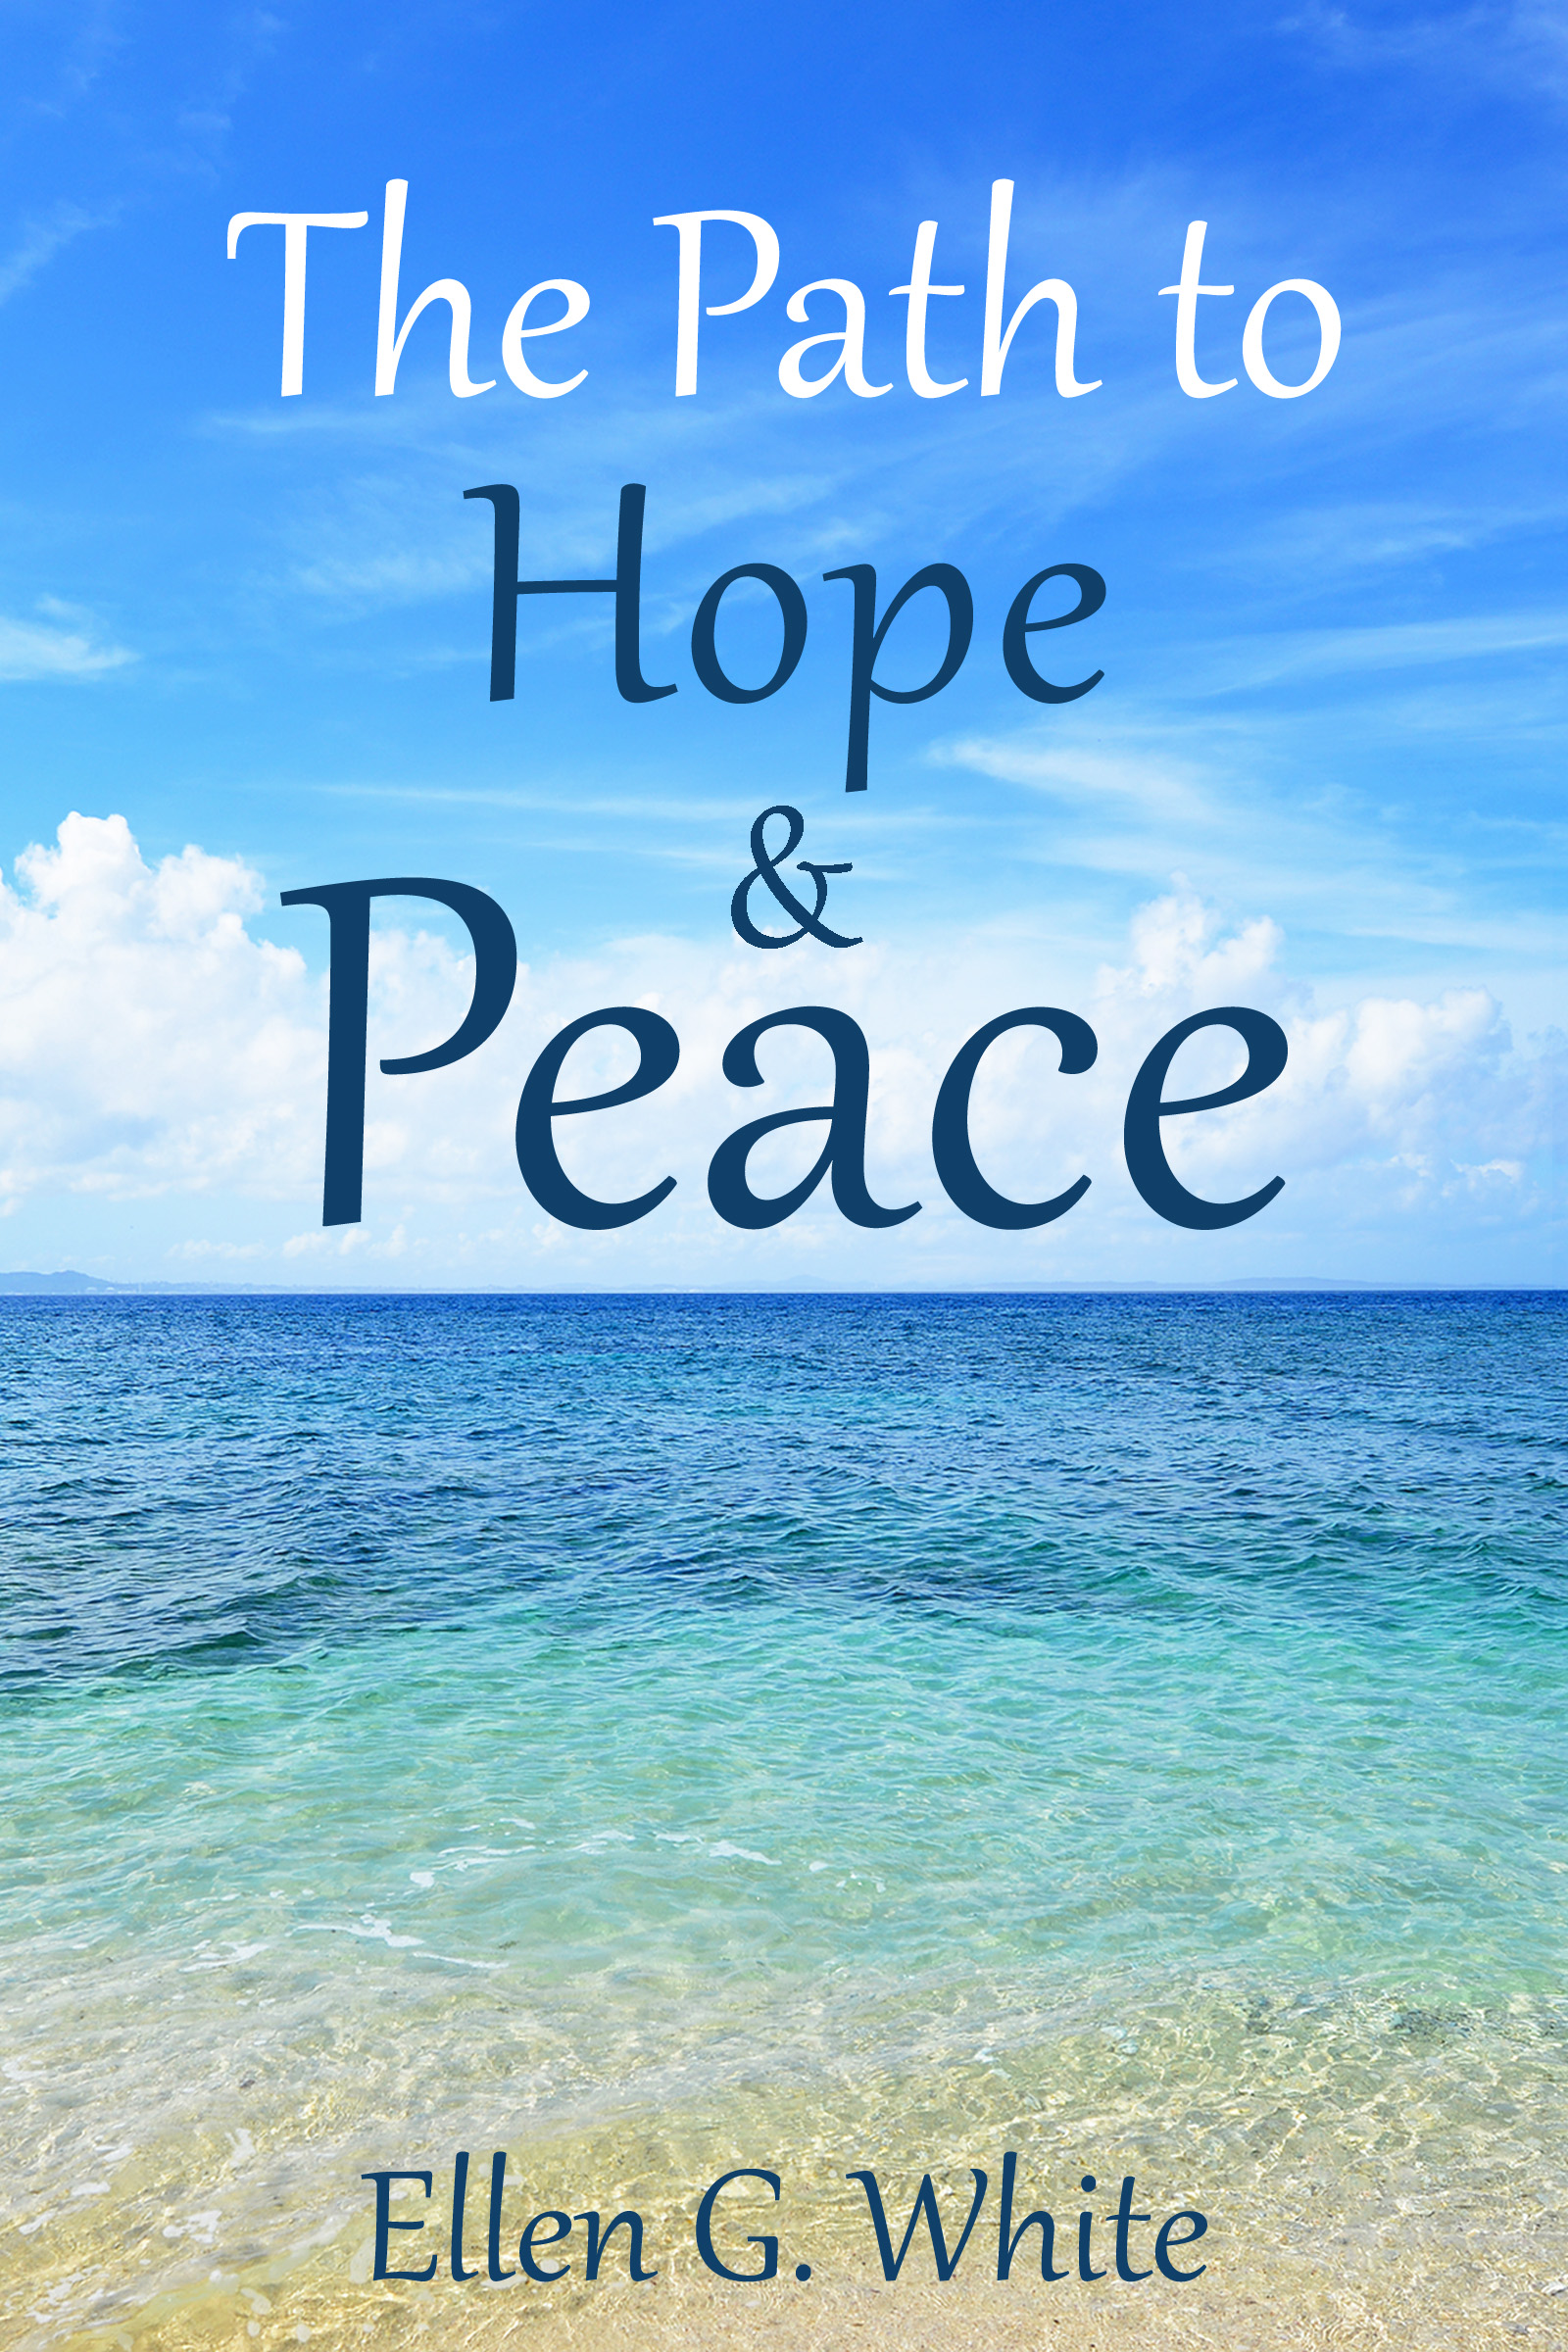 The Path of Hope and Peace